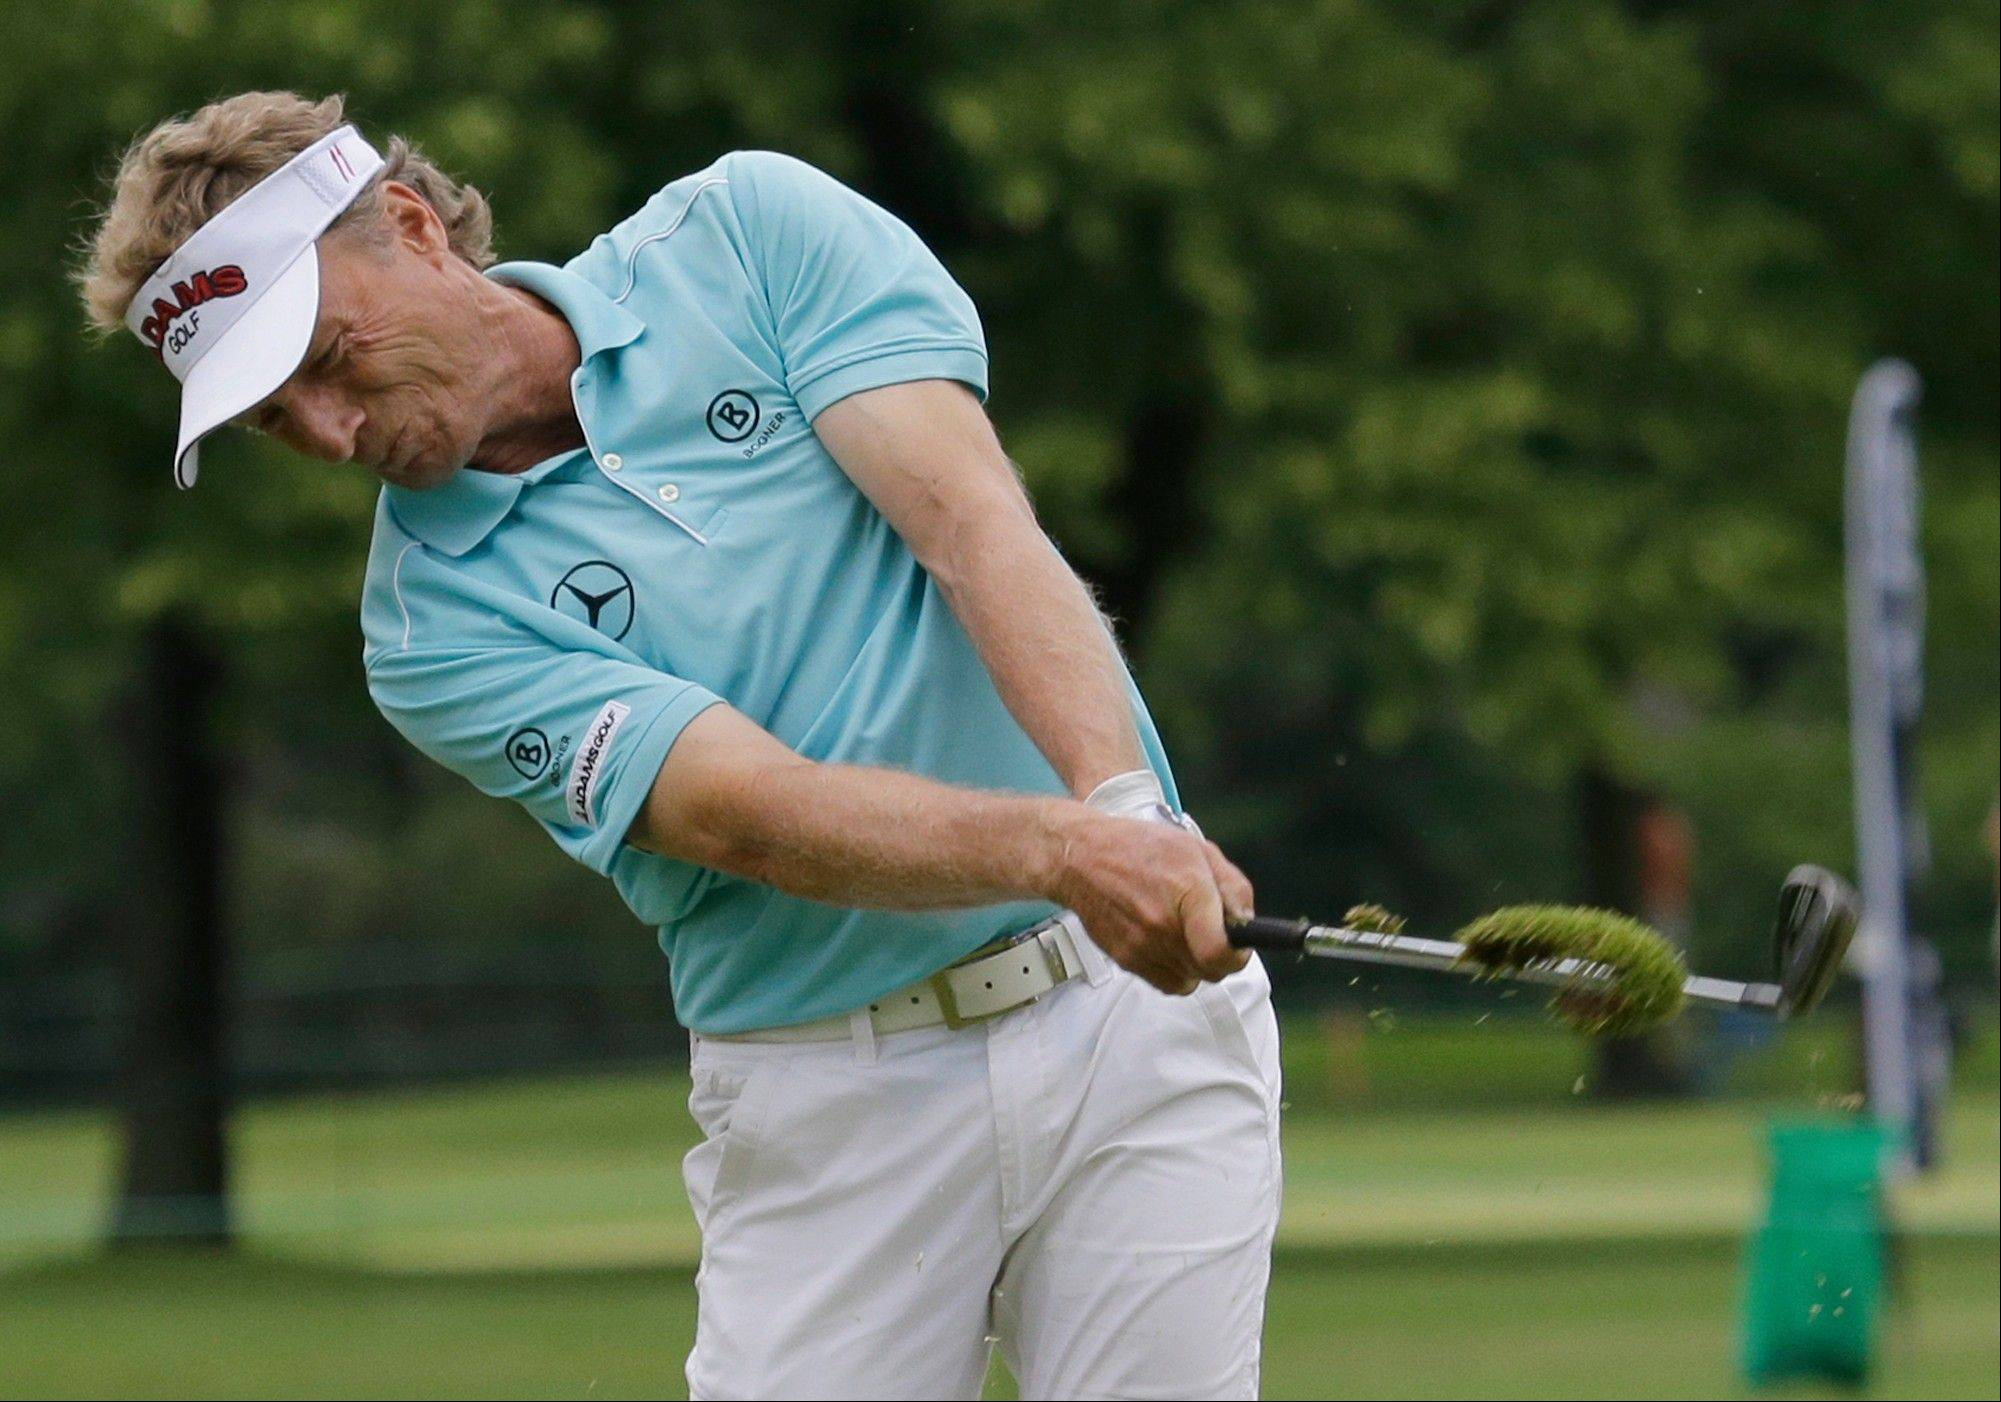 Bernhard Langer hits his second shot on the 18th fairway during the first round of the Encompass Championship golf tournament on Friday, June 21, 2013, in Glenview, Ill. (AP Photo/Nam Y. Huh)